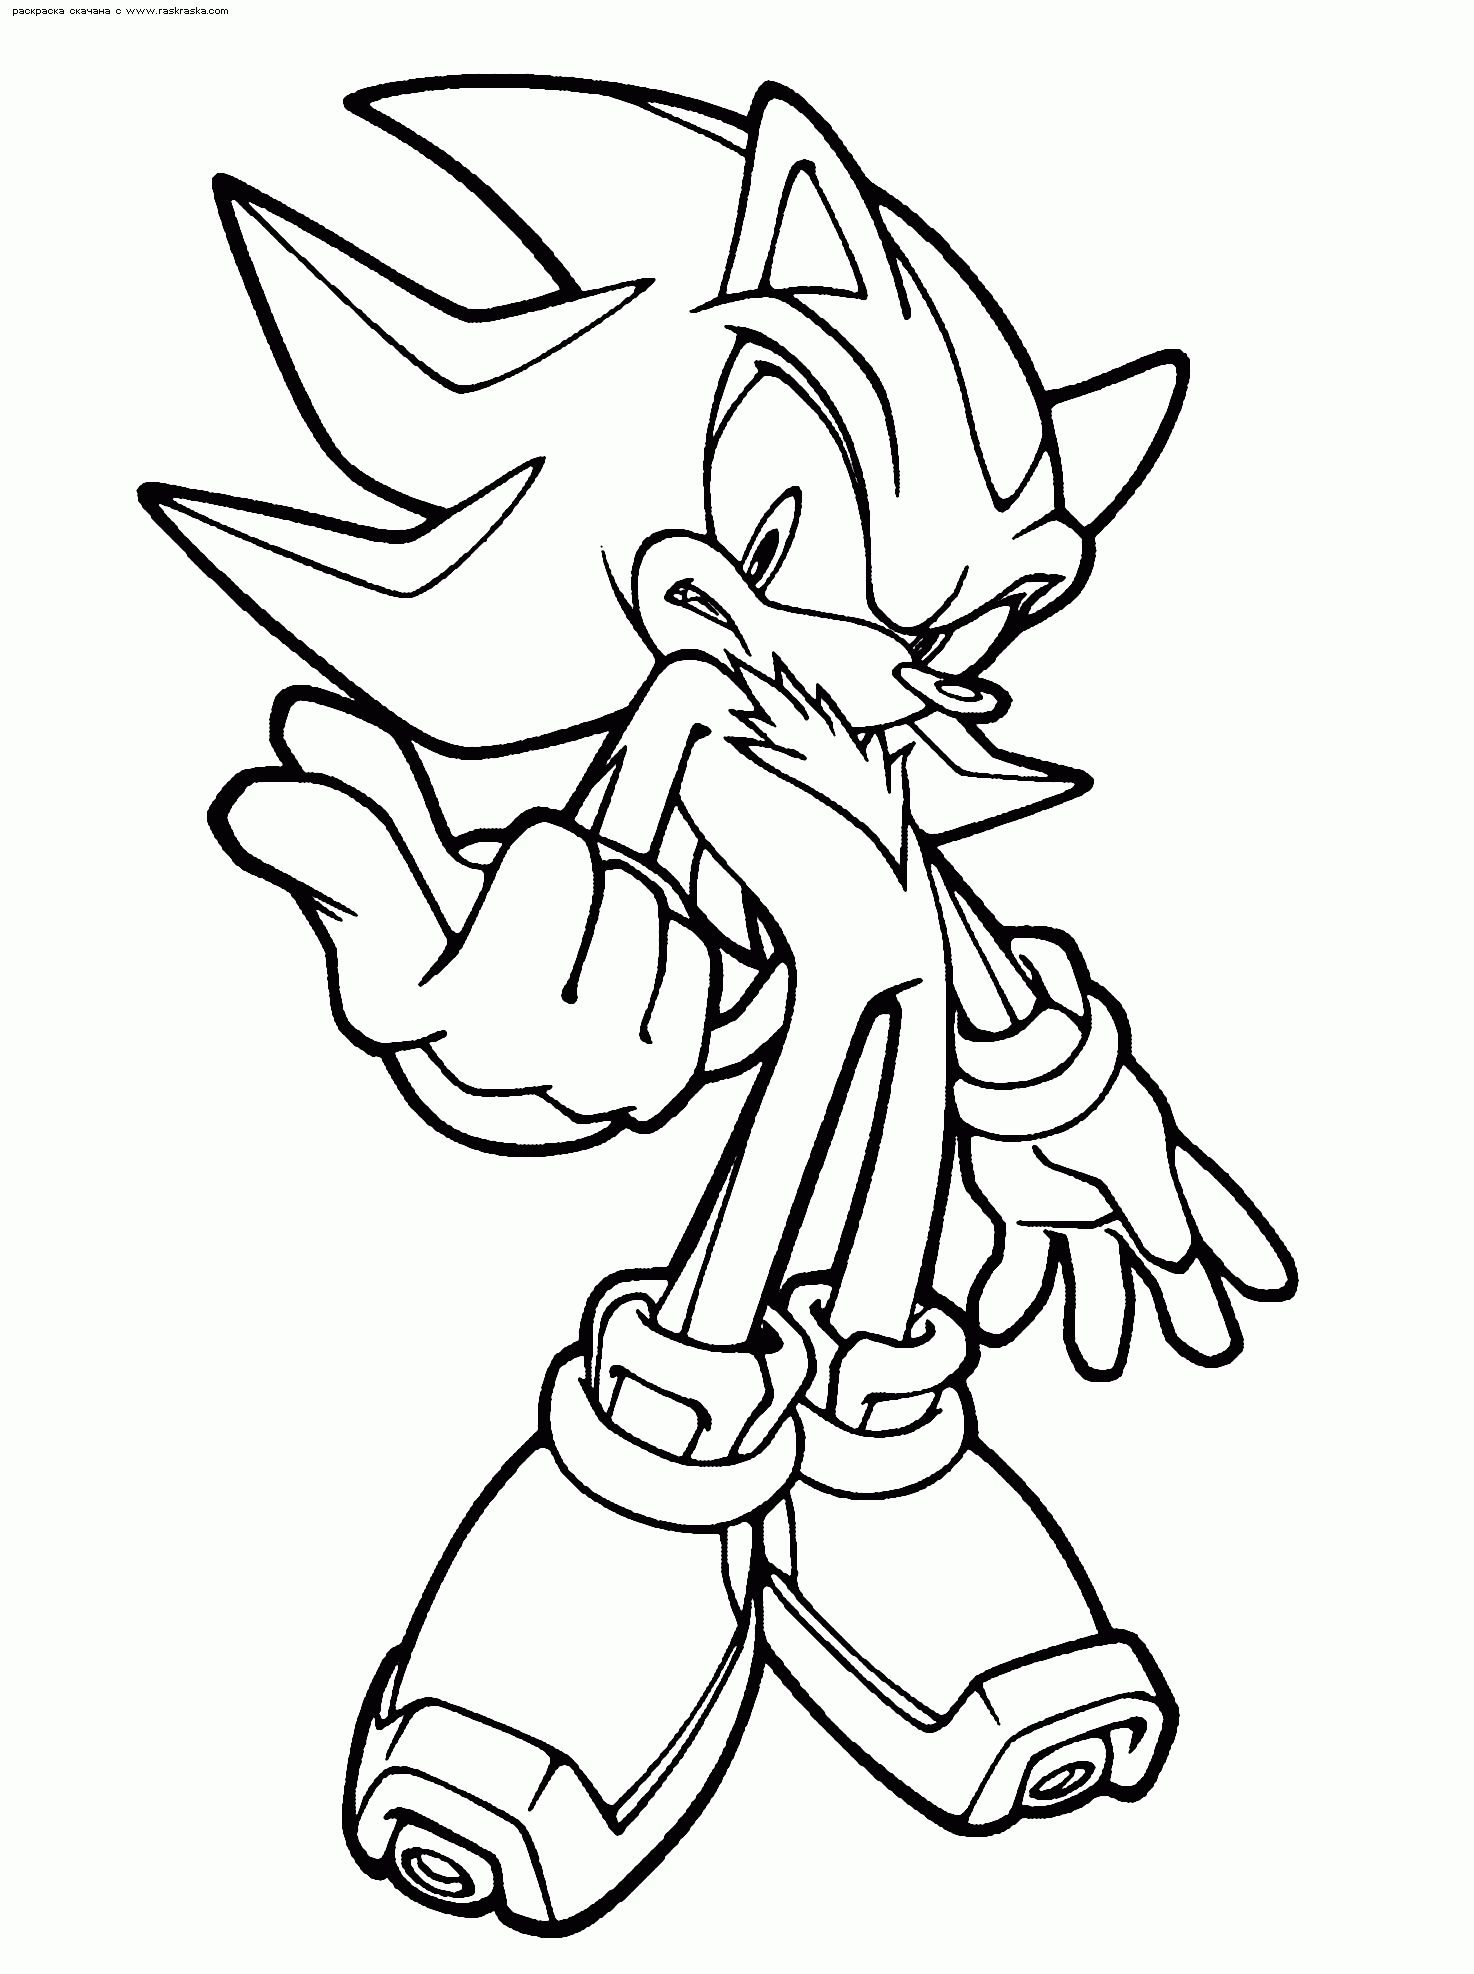 Sonic Coloring Pages Shadow Shadow Sonic Boom Coloring Pages Sonic And Shadow Coloring Pages To Print Sonic And In 2020 Hedgehog Colors Super Shadow Coloring Pages